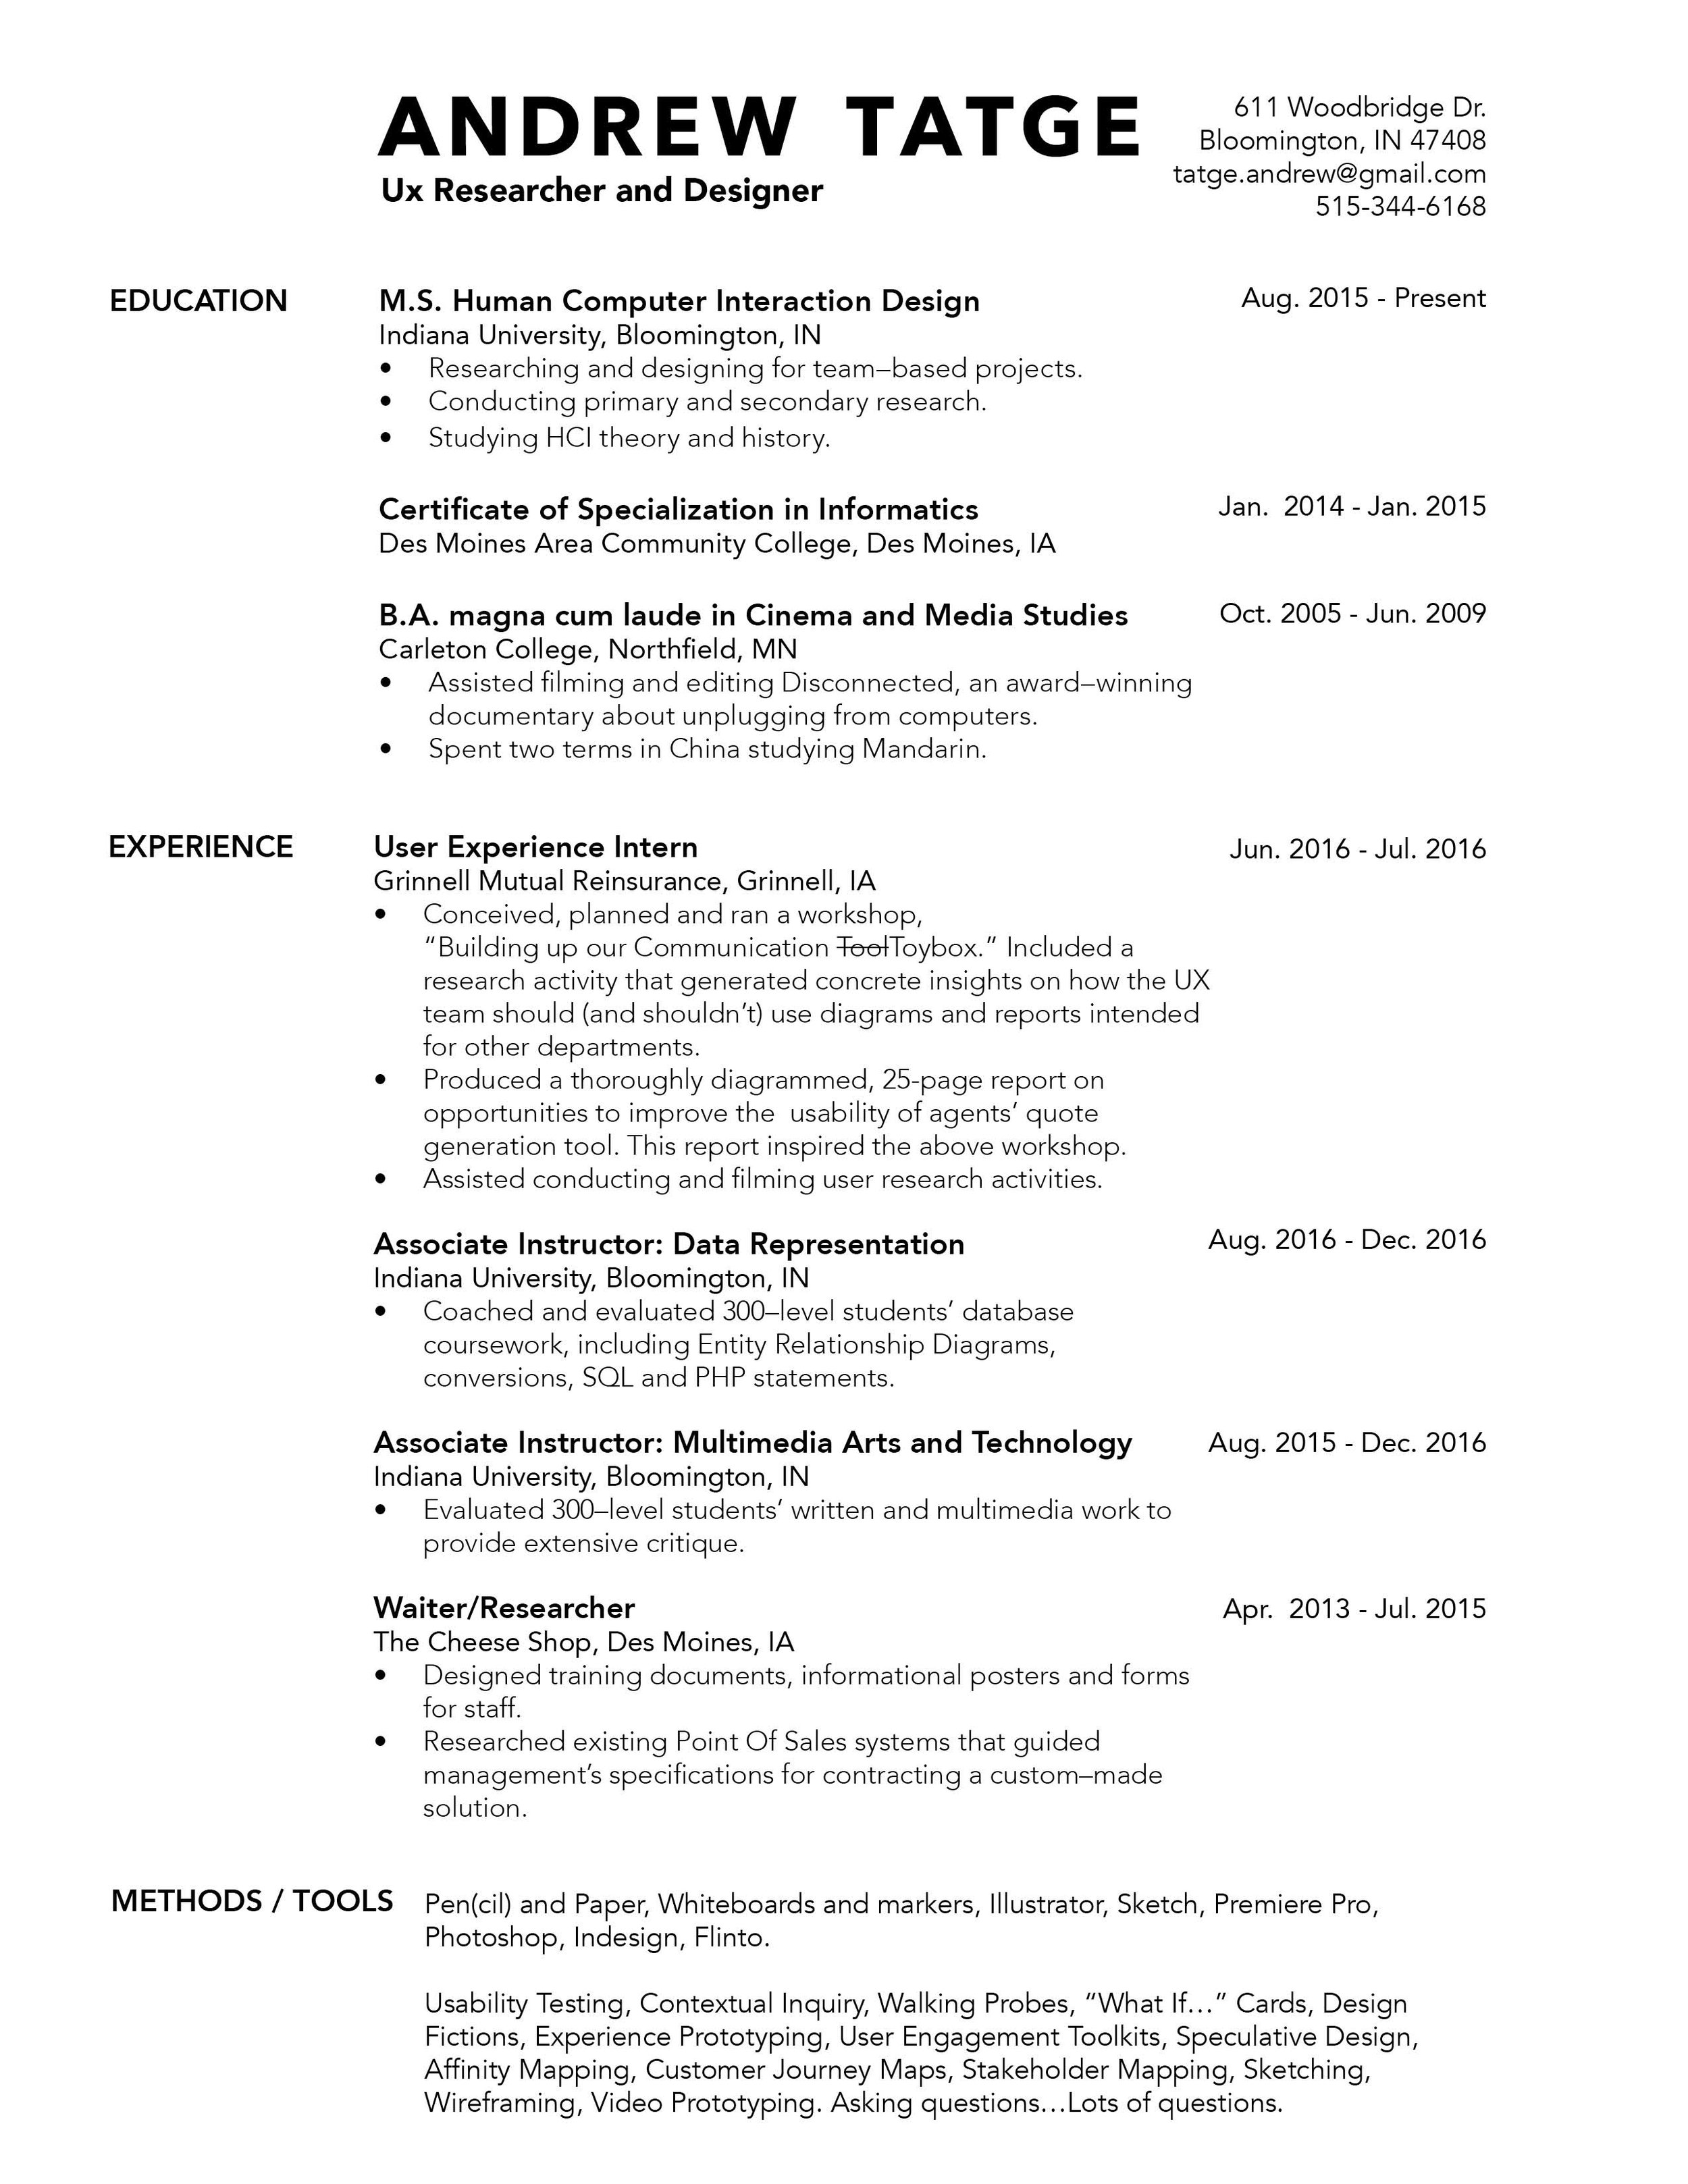 Click for PDF of my résumé